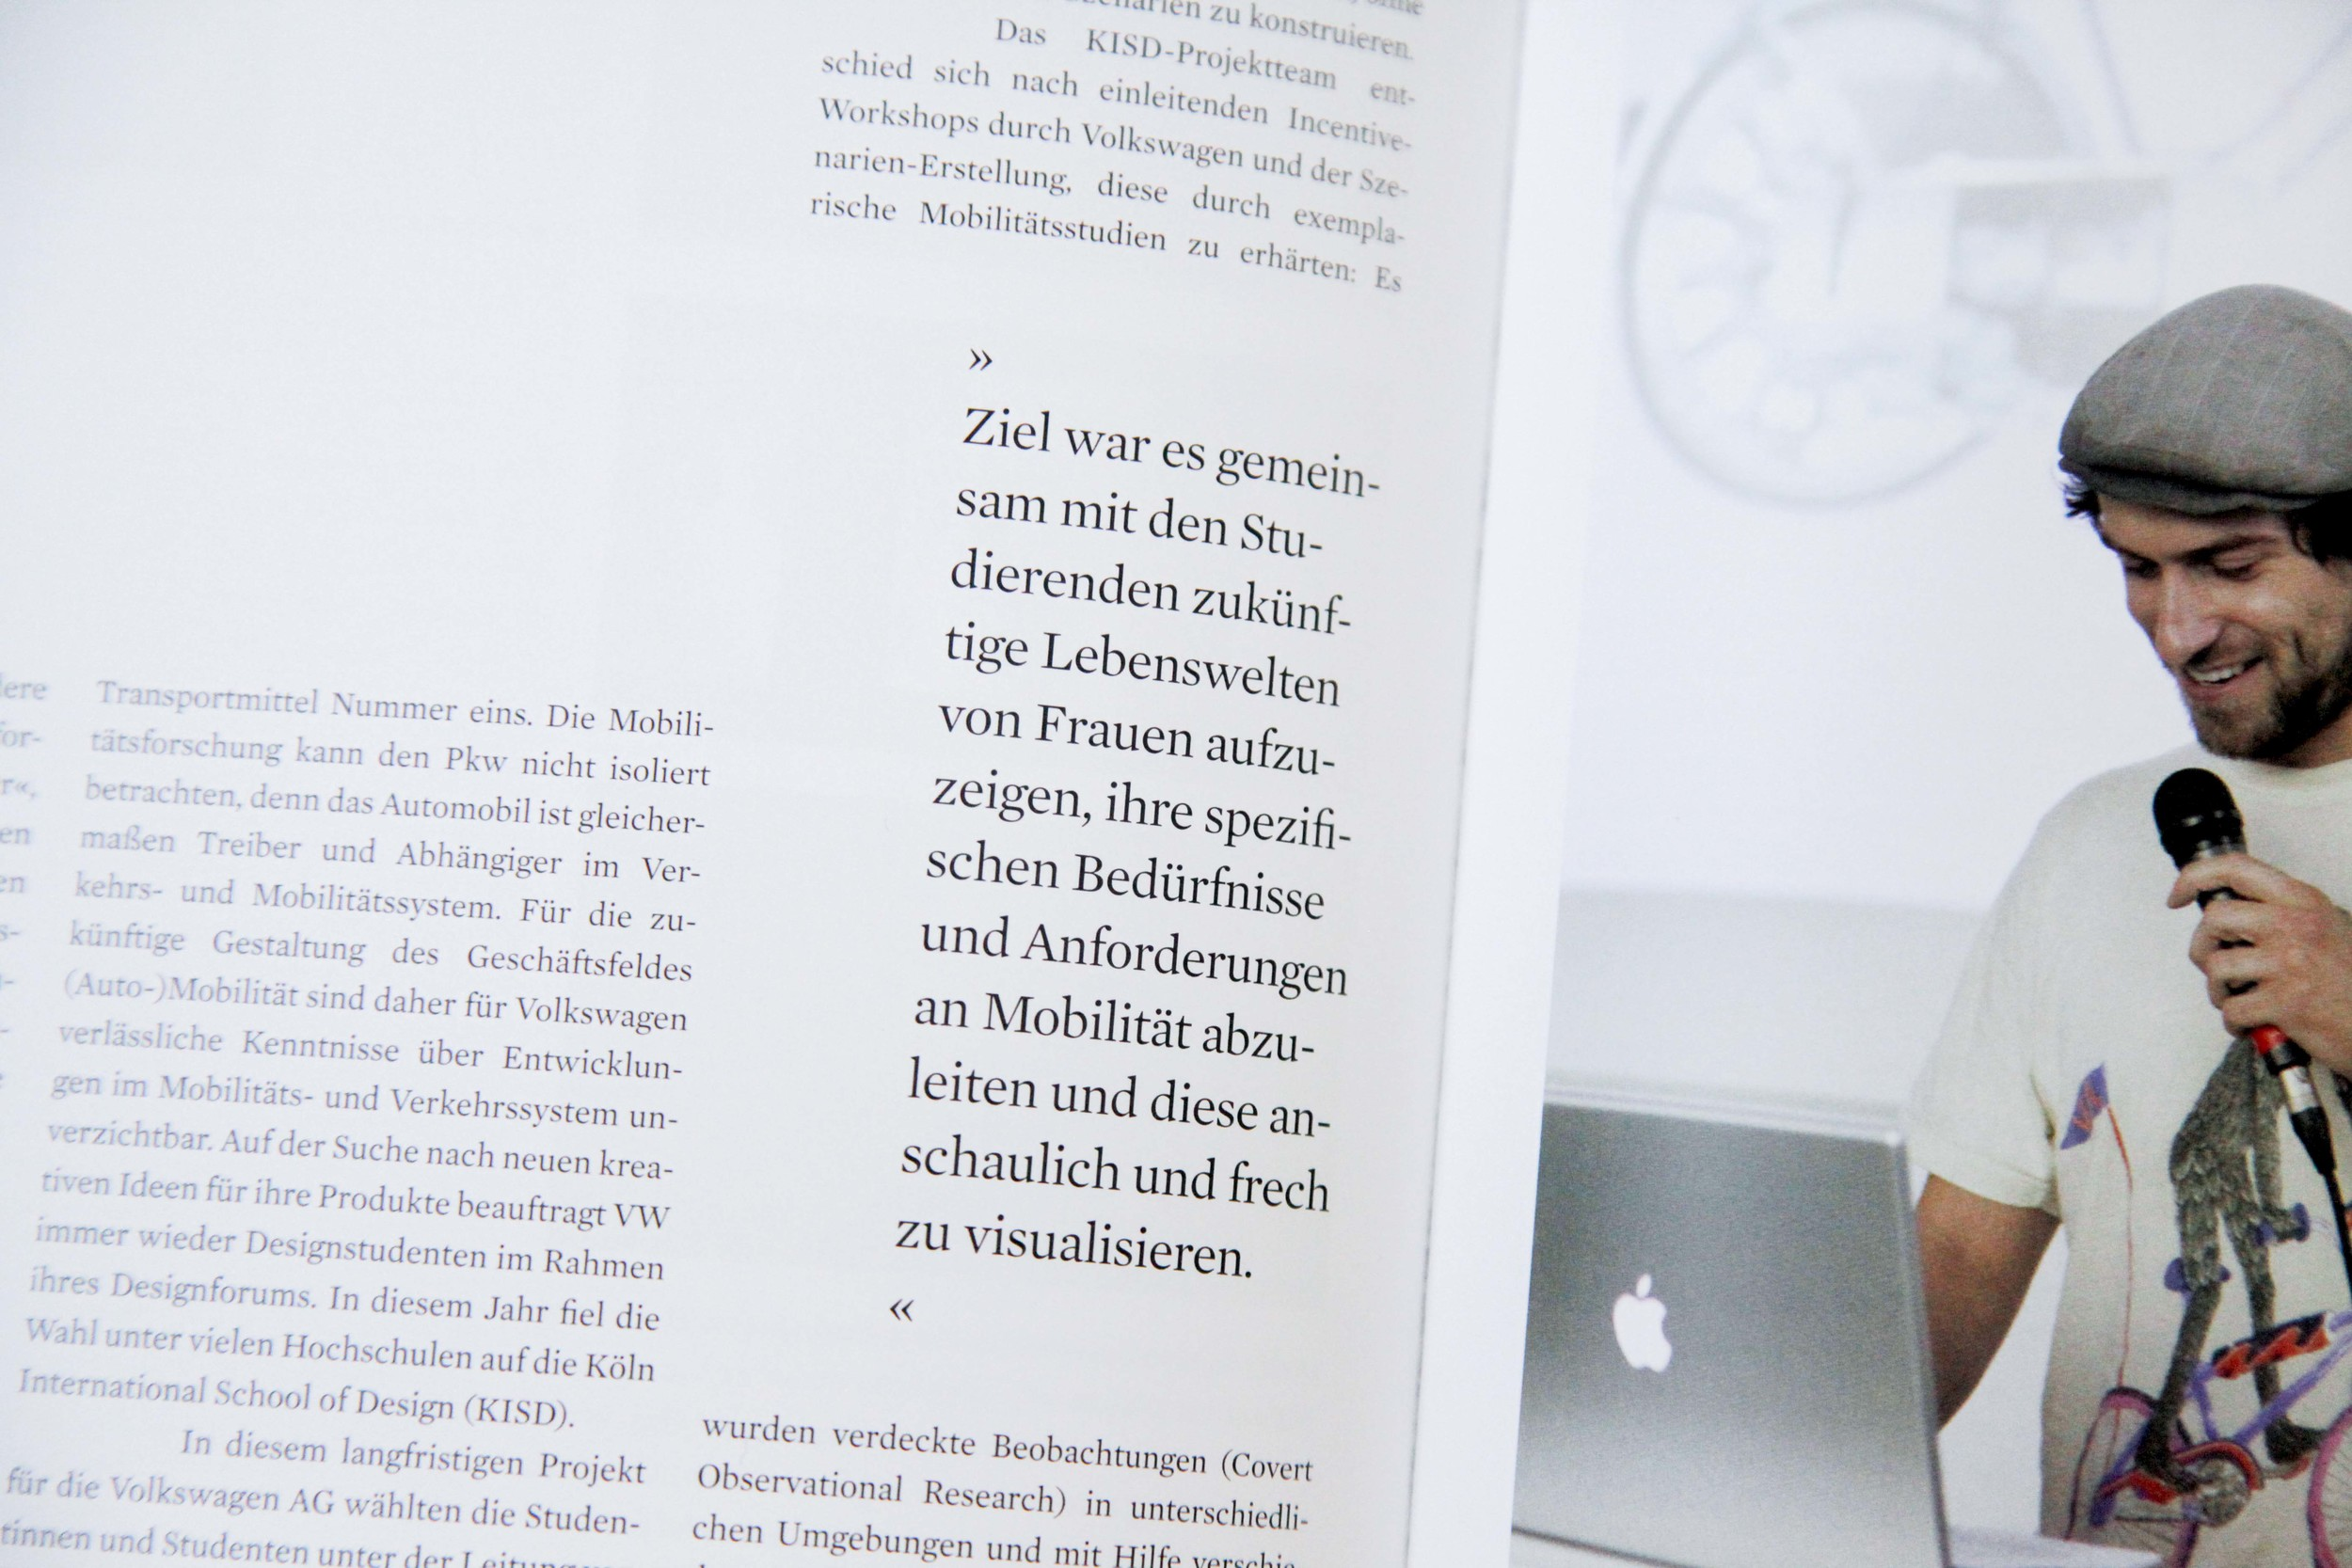 Artikel im Jahrbuch der Köln International School of Design 2009